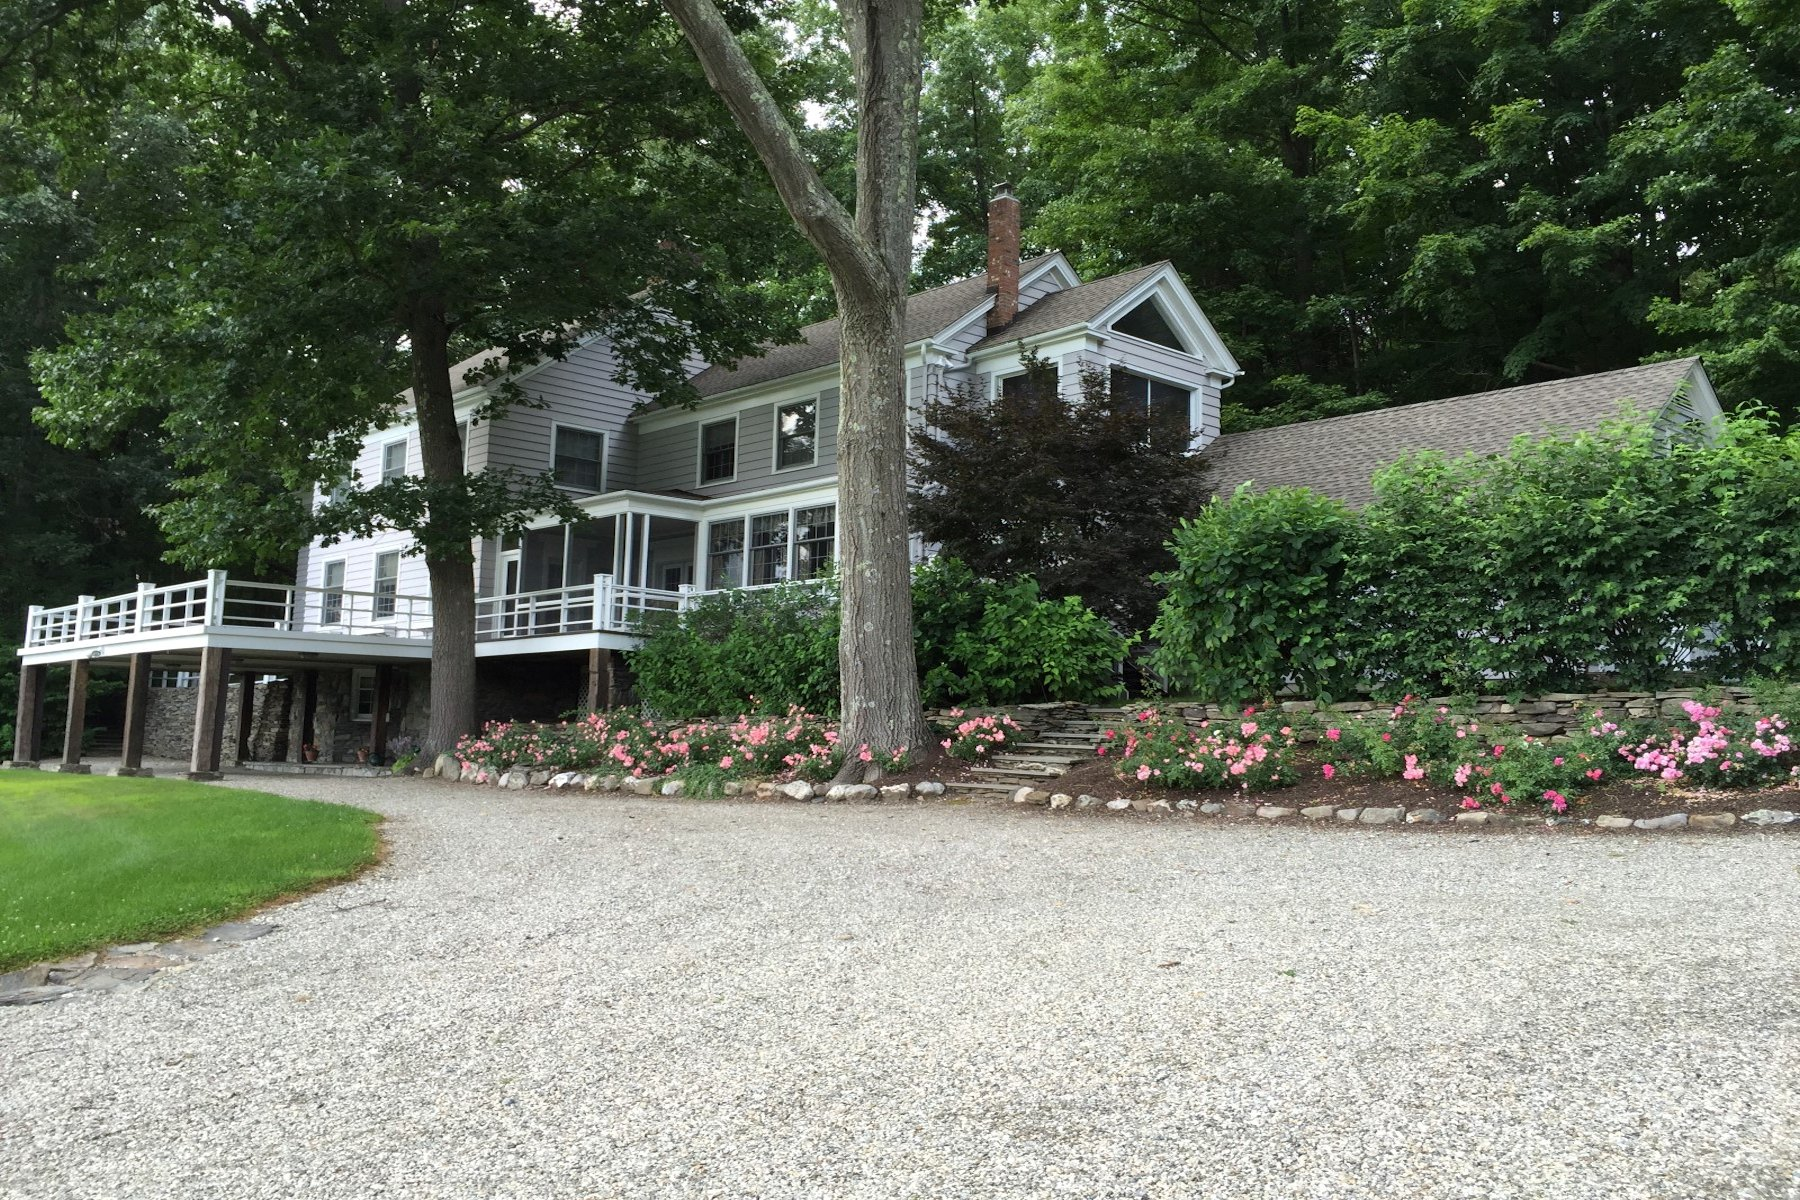 Single Family Home for Sale at Tweenbrooks Millbrook, New York 12545 United States